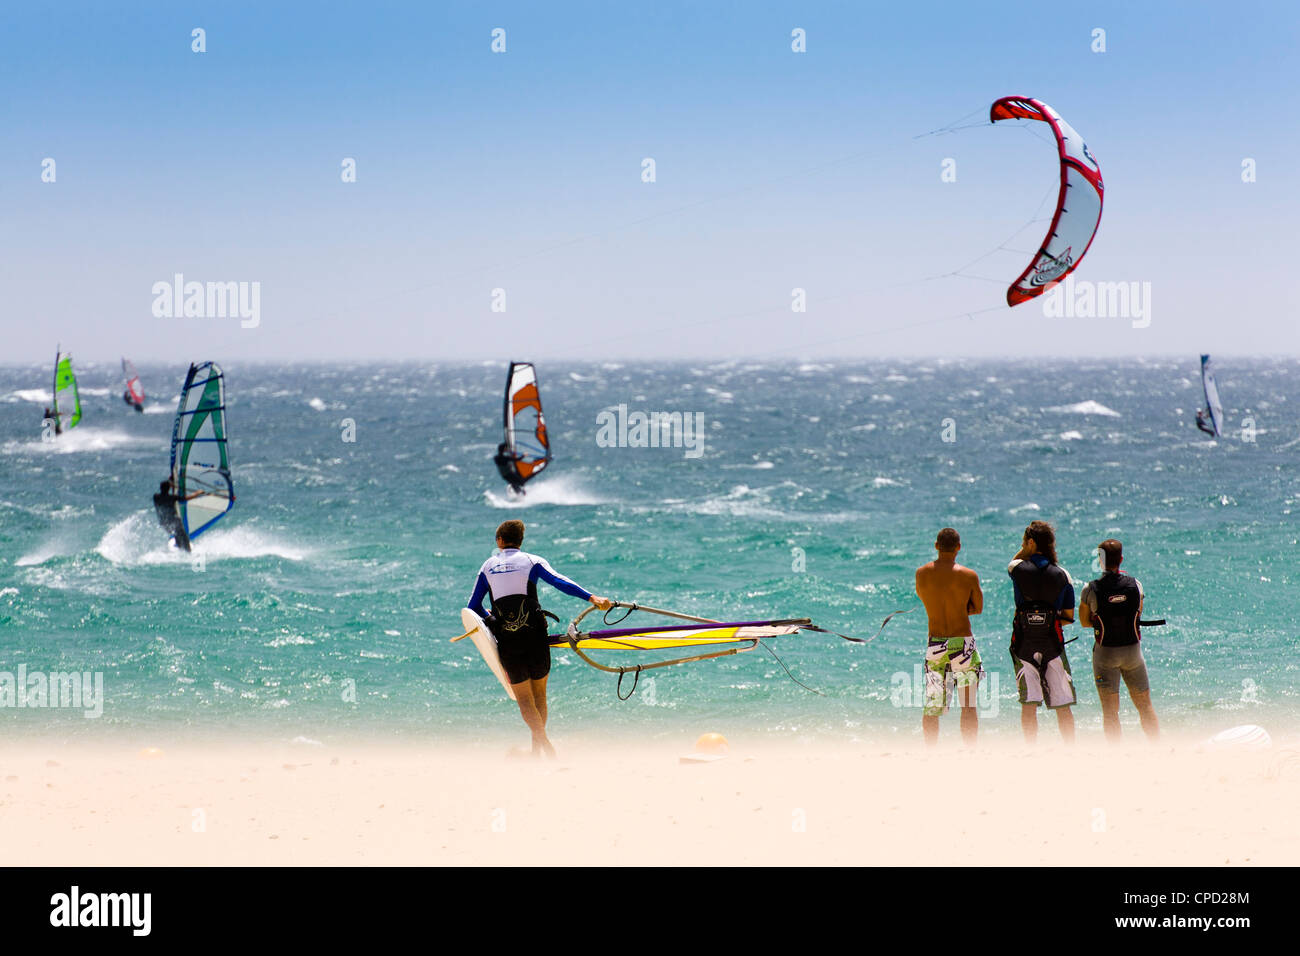 Spectators watching windsurfing in high Levante winds in the Strait of Gibraltar, Valdevaqueros, Tarifa, Andalucia, - Stock Image